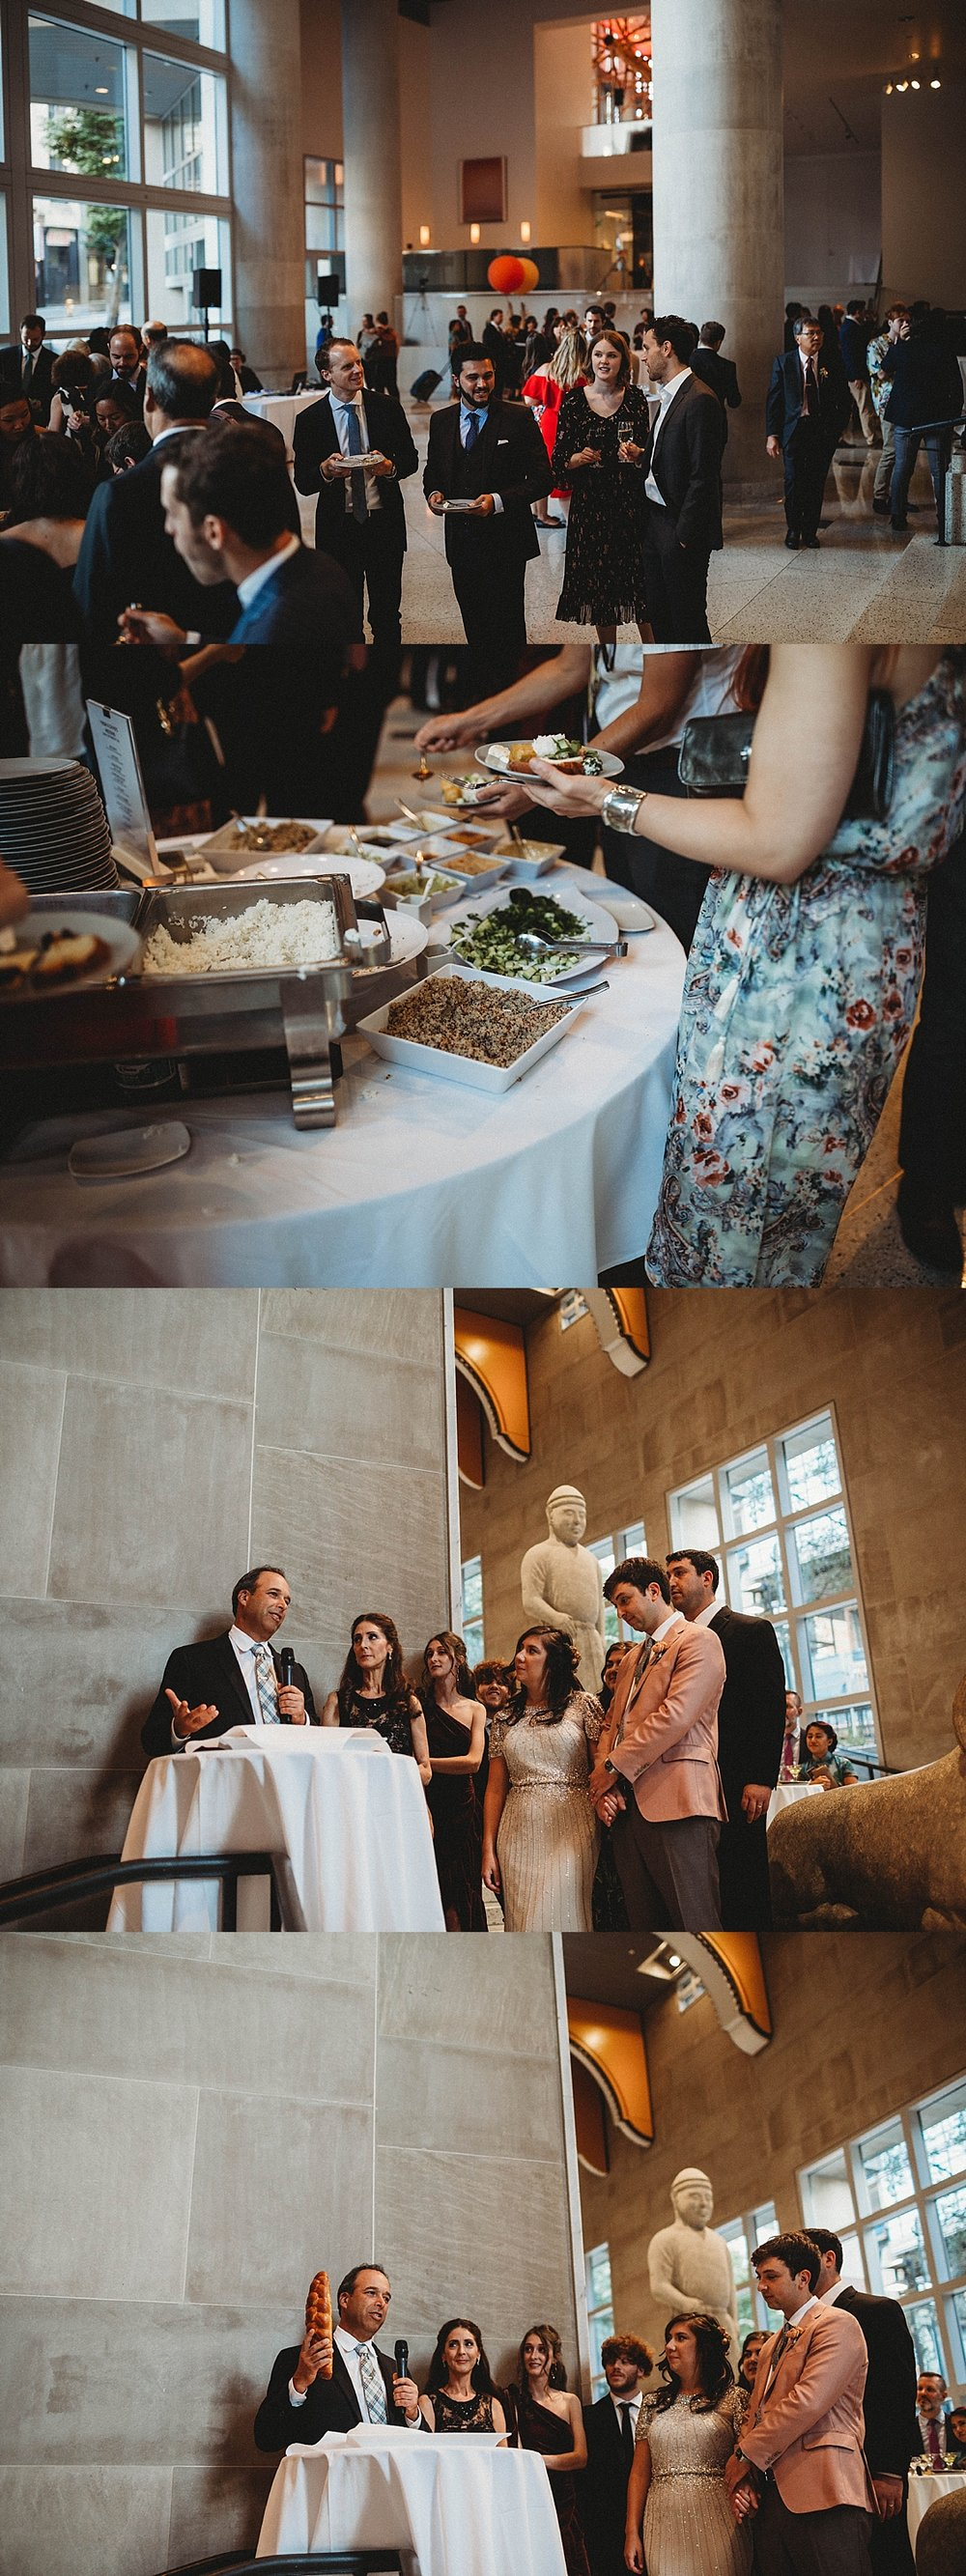 yinshi david - seattle wedding photographer - SAM wedding volunteer park reception -30.jpg